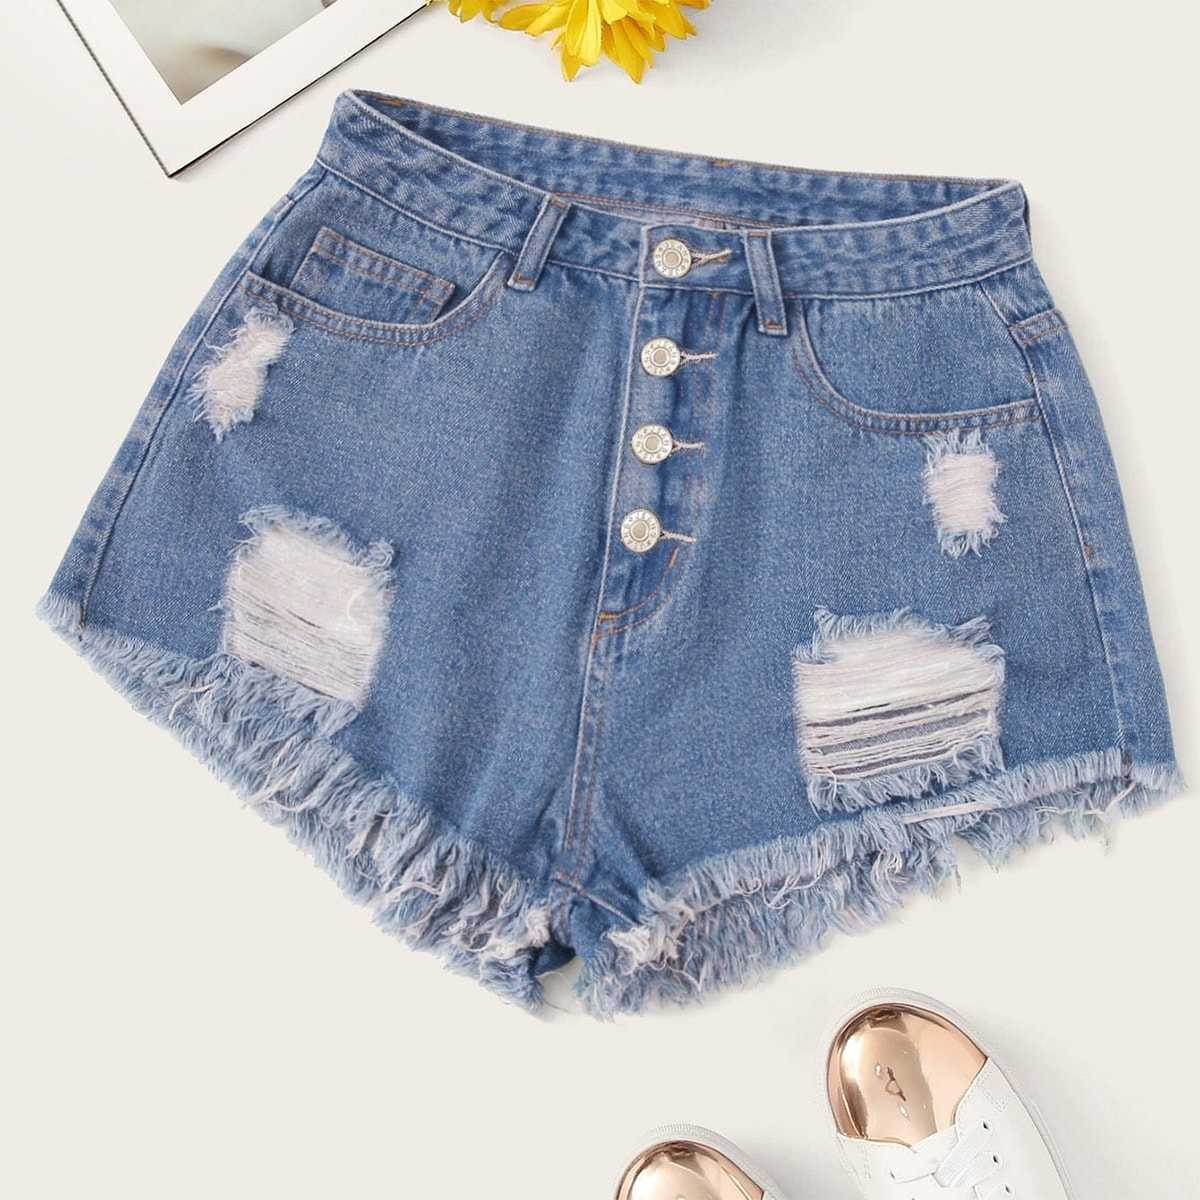 Plus Button Fly Raw Hem Ripped Denim Shorts in Blue by ROMWE on GOOFASH